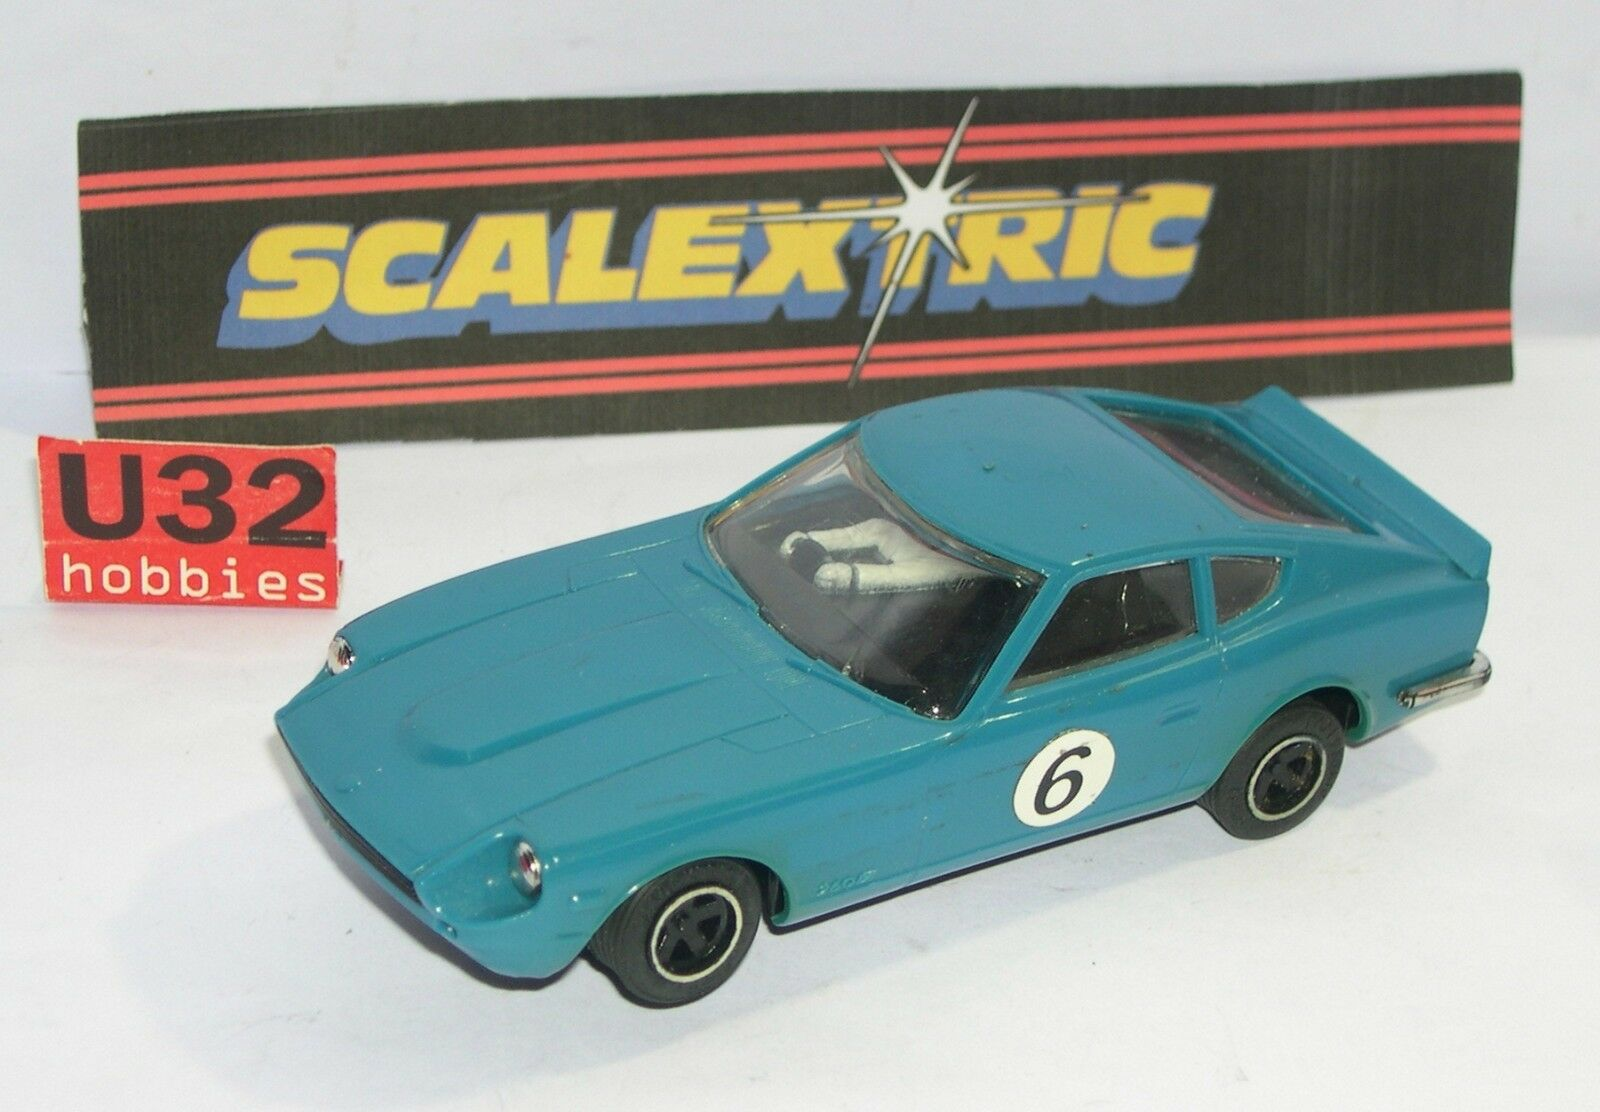 FN SCALEXTRIC C-053 DATSUN 260Z blueE EXCELLENT CONDITION UNBOXED